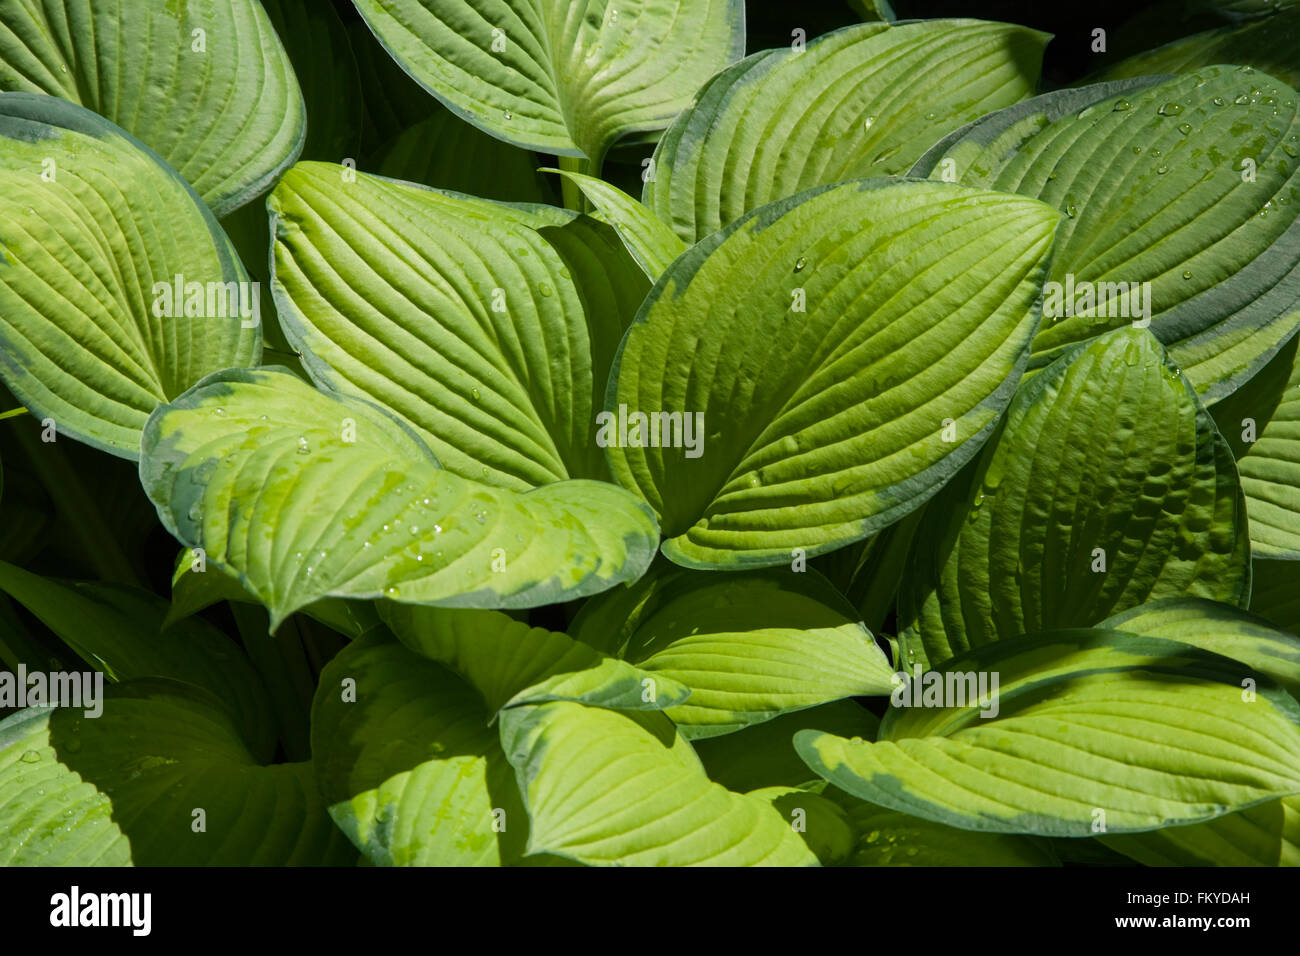 Hosta Leaves Stock Photos Hosta Leaves Stock Images Alamy